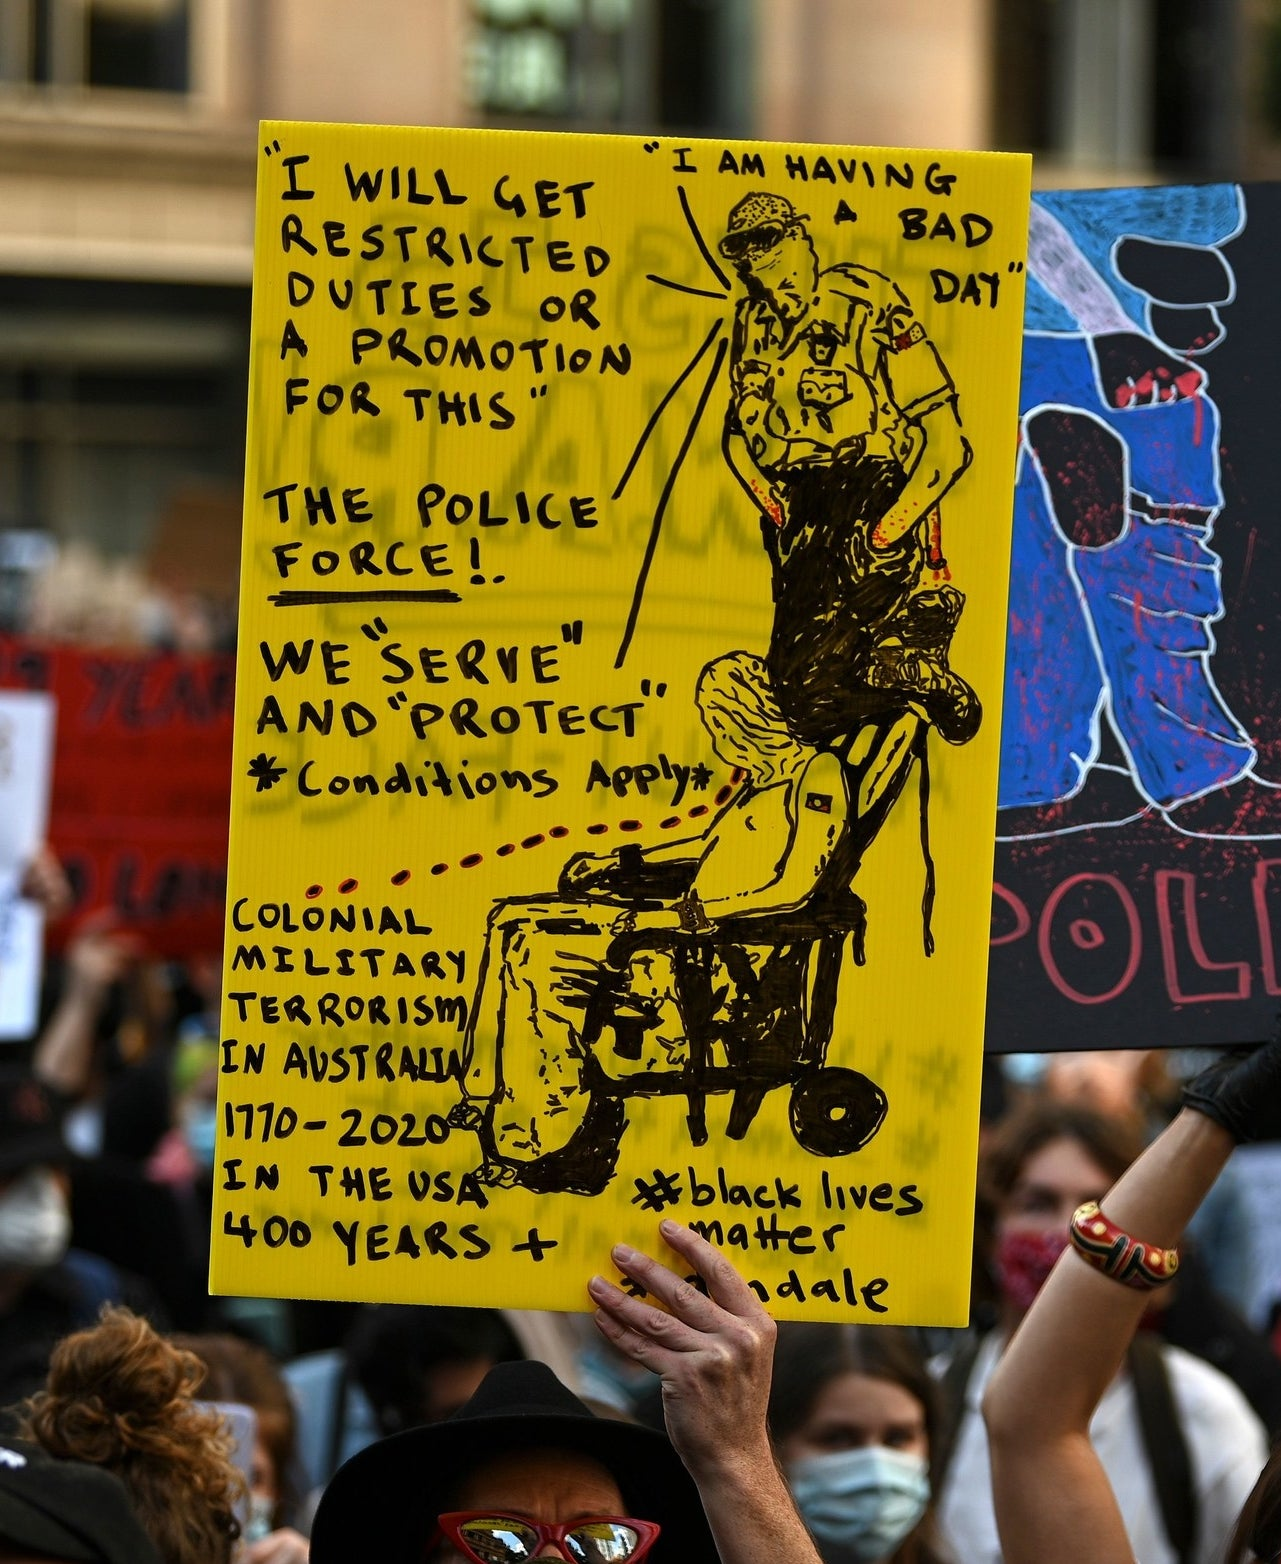 A protest sign depicting a police officer leaning on the neck of an innocent person.